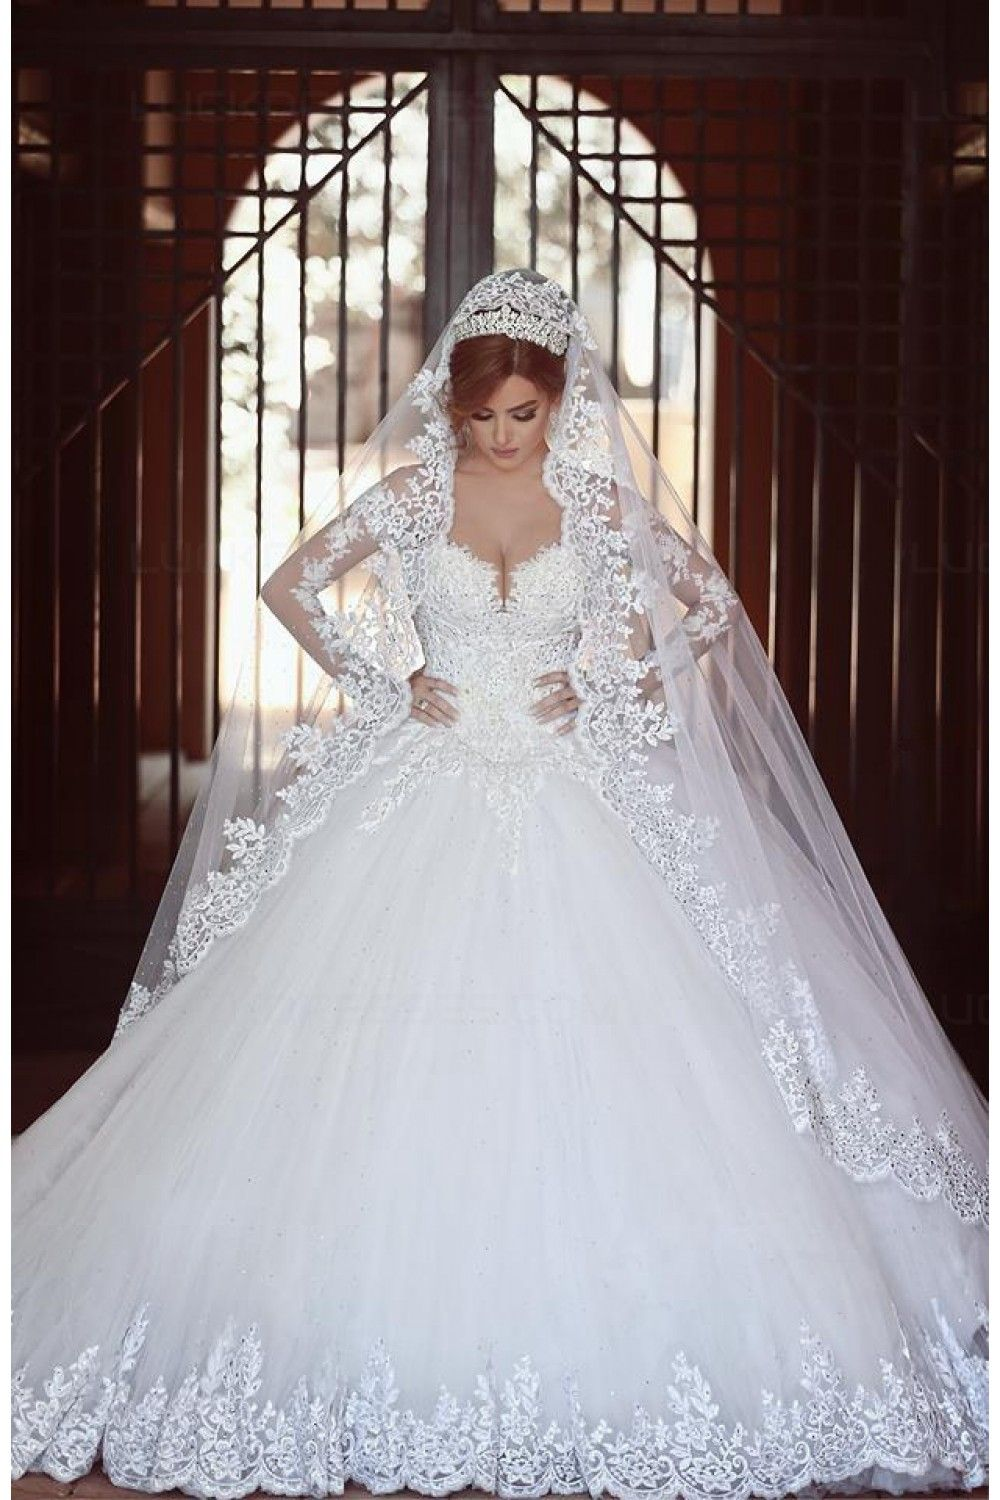 Ball gown wedding dress with sleeves  Long Sleeves Lace Tulle Ball Gown Wedding Dresses Bridal Gowns